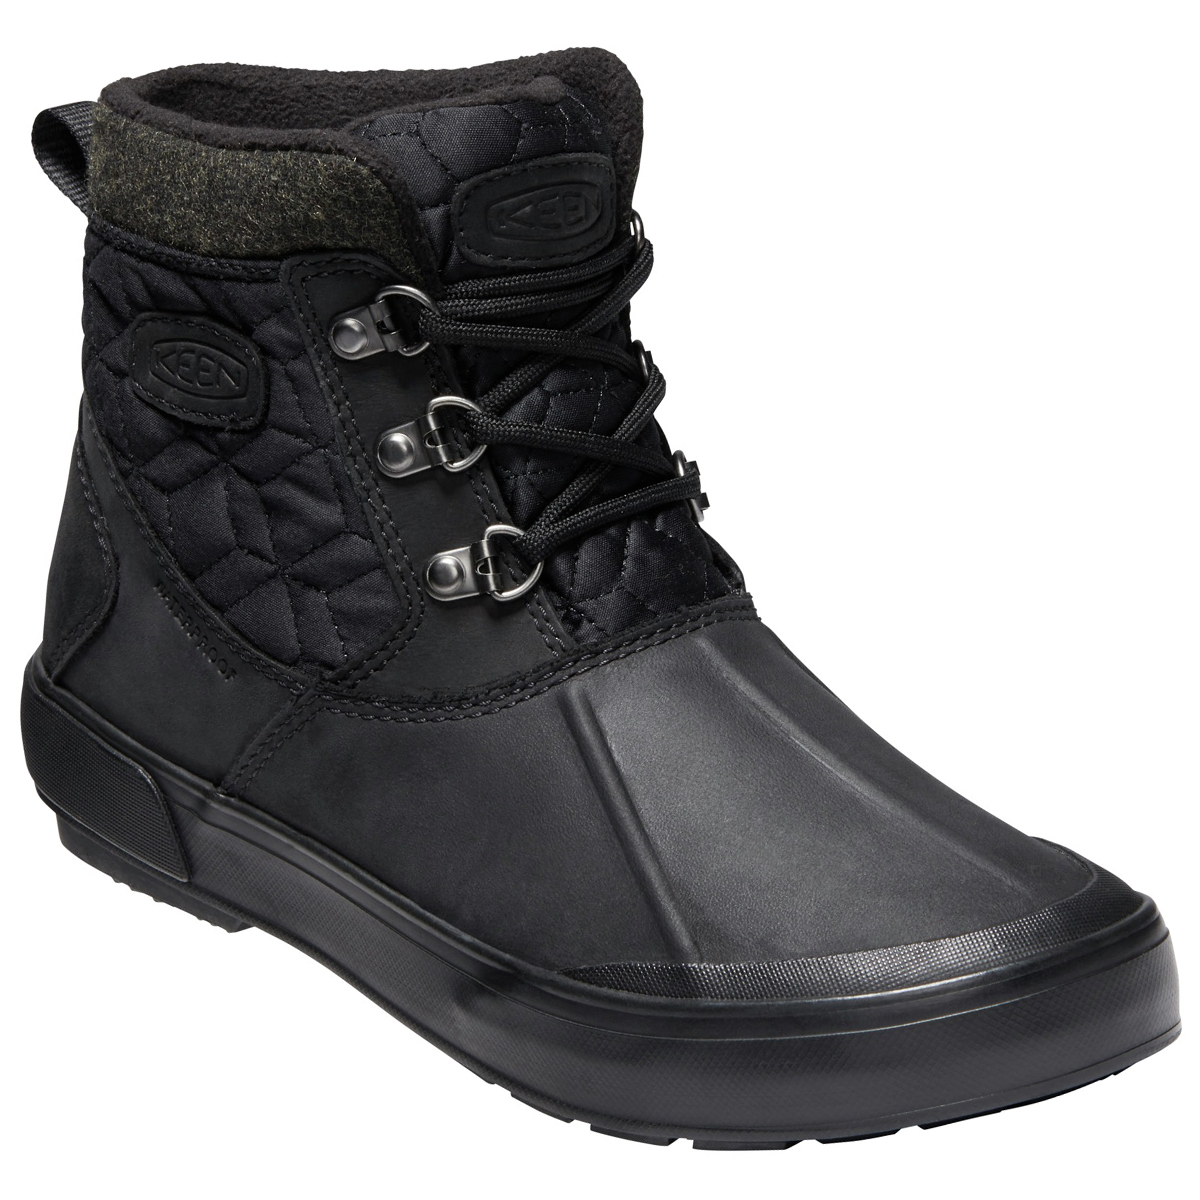 Keen Women's Elsa Ii Quilted Waterproof Insulated Ankle Boots - Black, 8.5